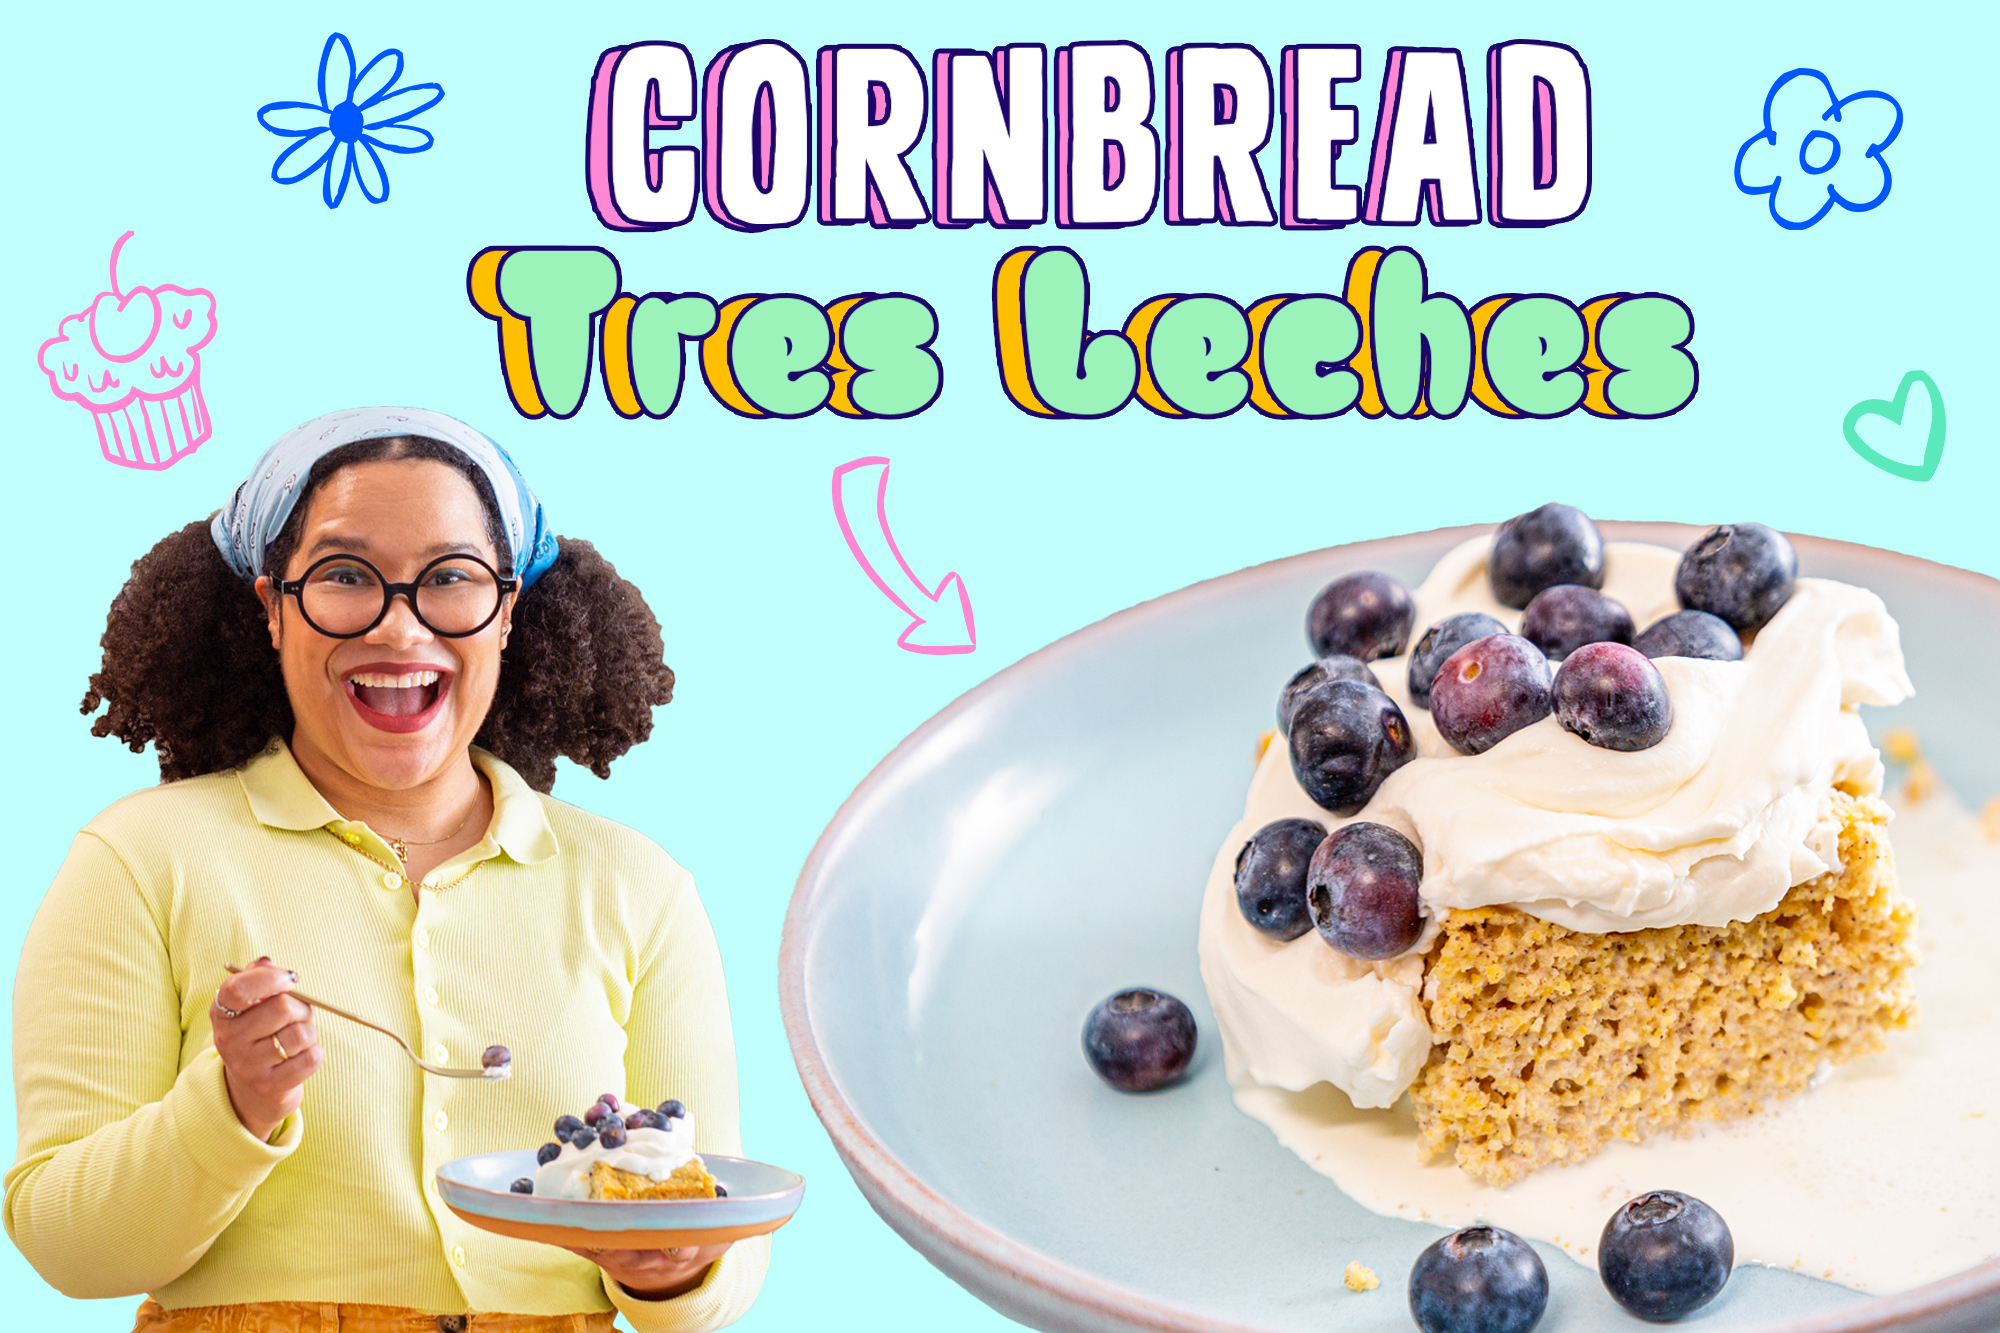 Paola Velez and her cornbread tres leches cake with blueberries